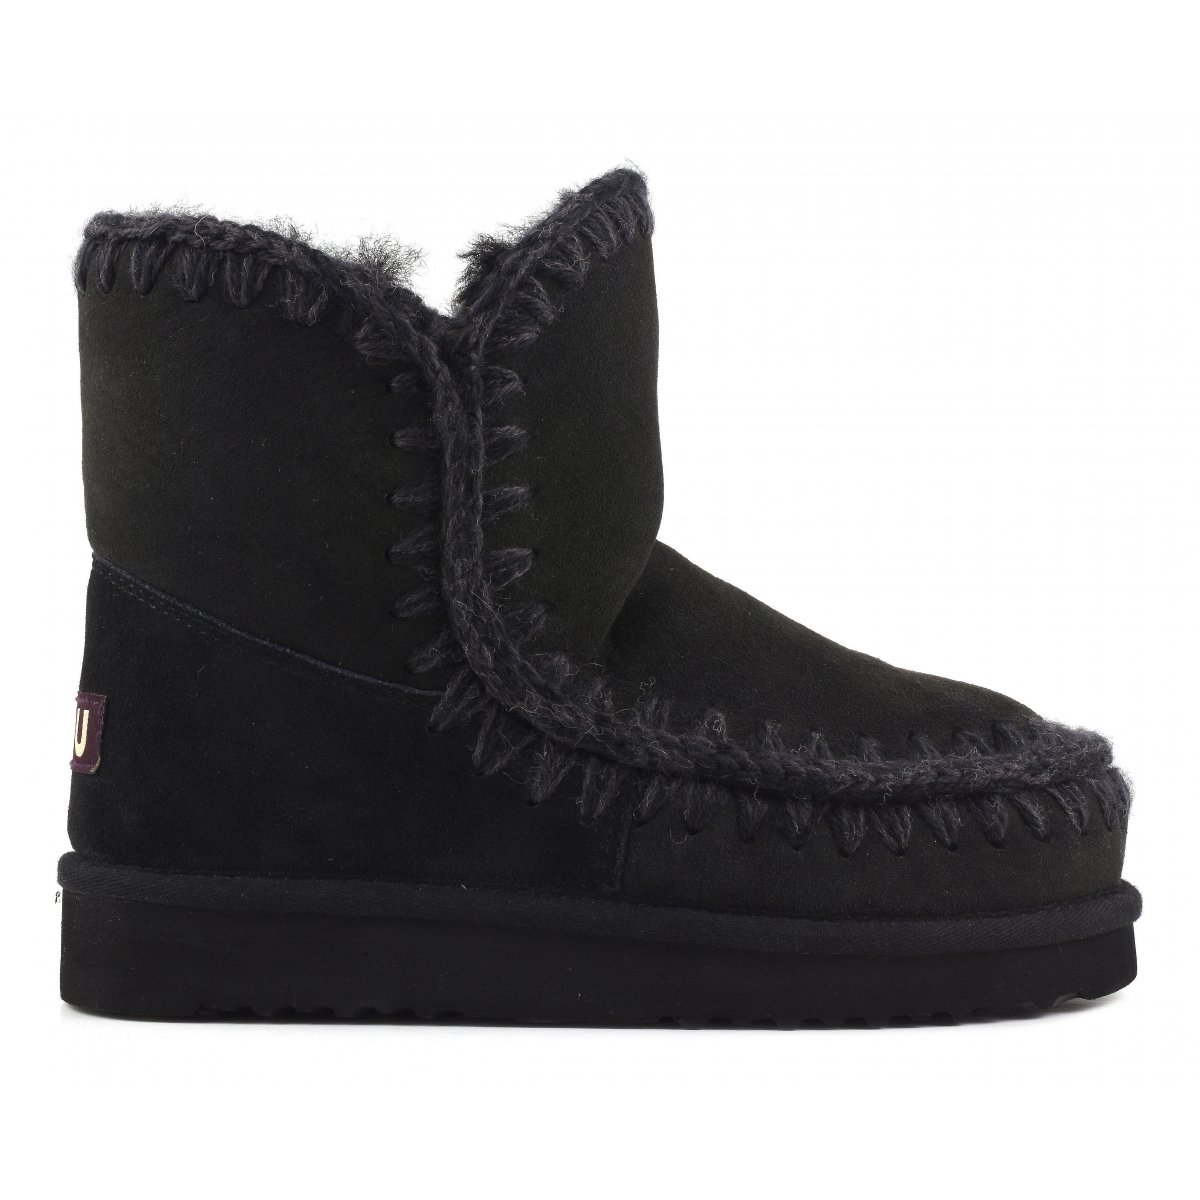 60af7356f55 eskimo 18 - ankle boots mou women fall winter